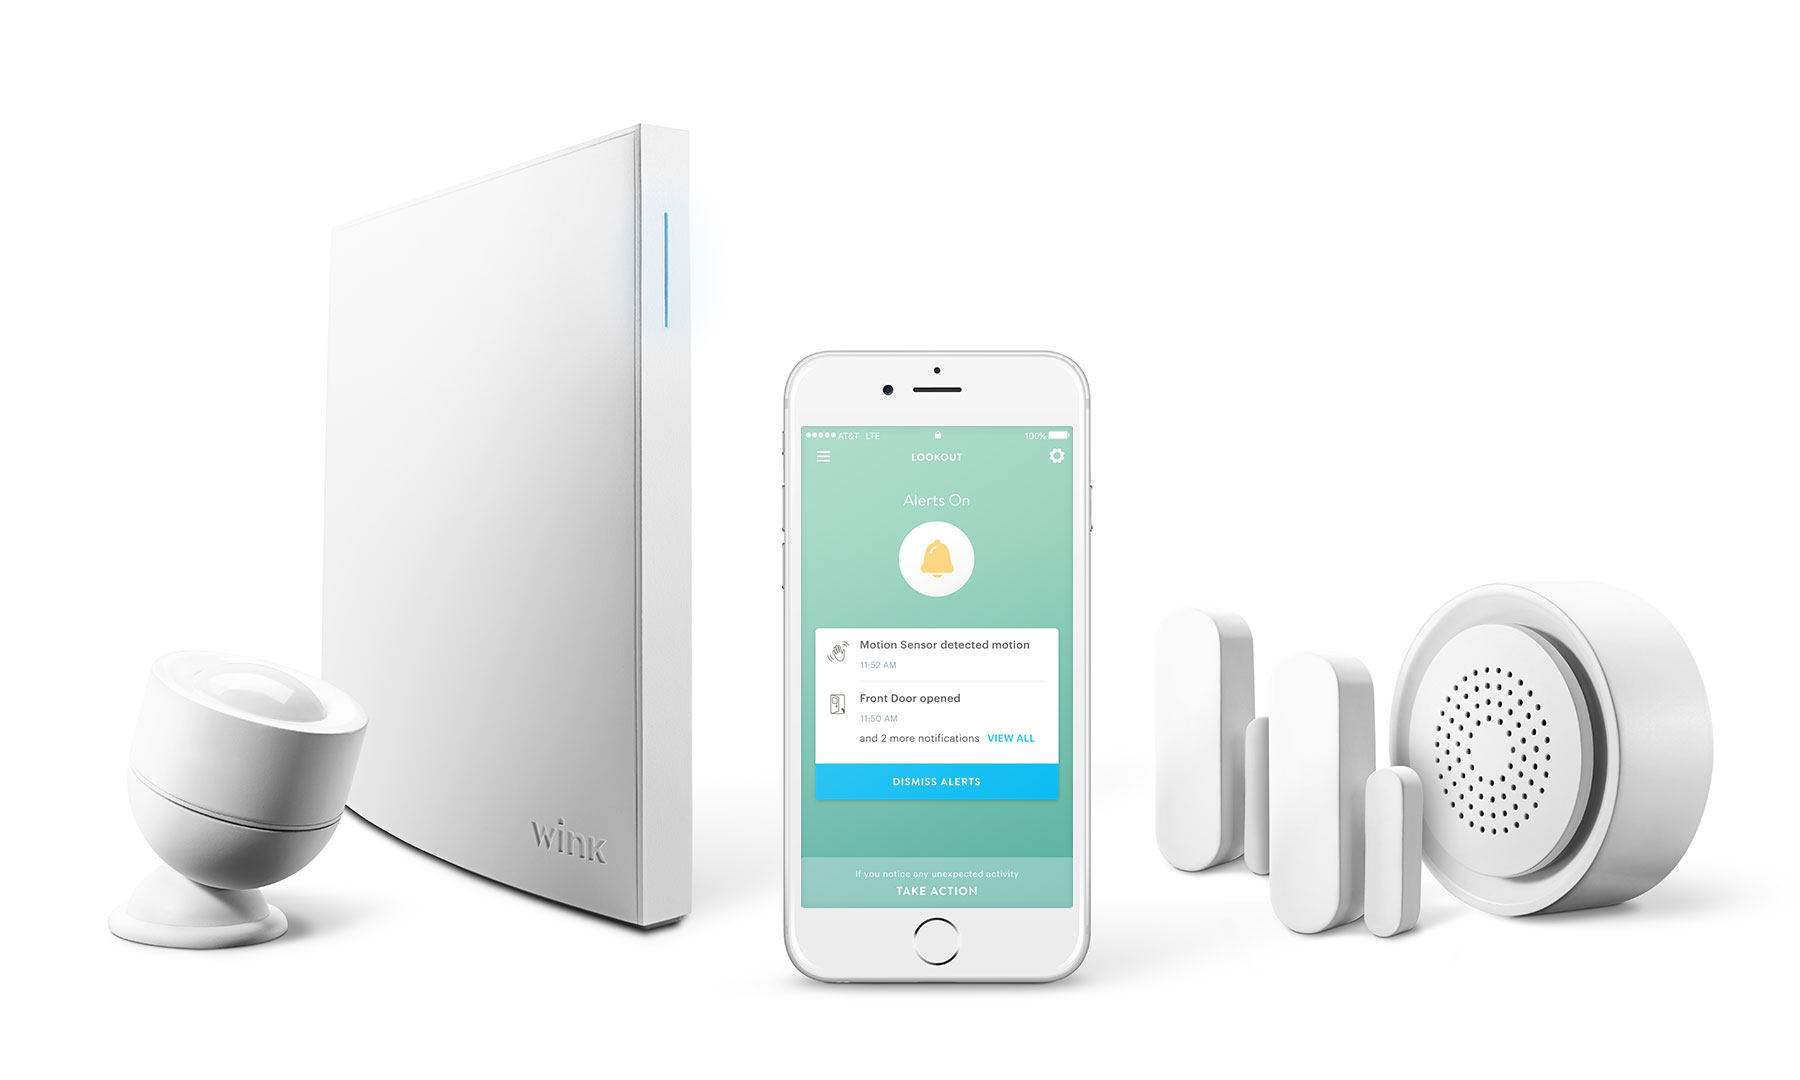 Nest Secure Monitoring Will Cost You But Will You Pay Stacey On Iot Internet Of Things News And Analysis